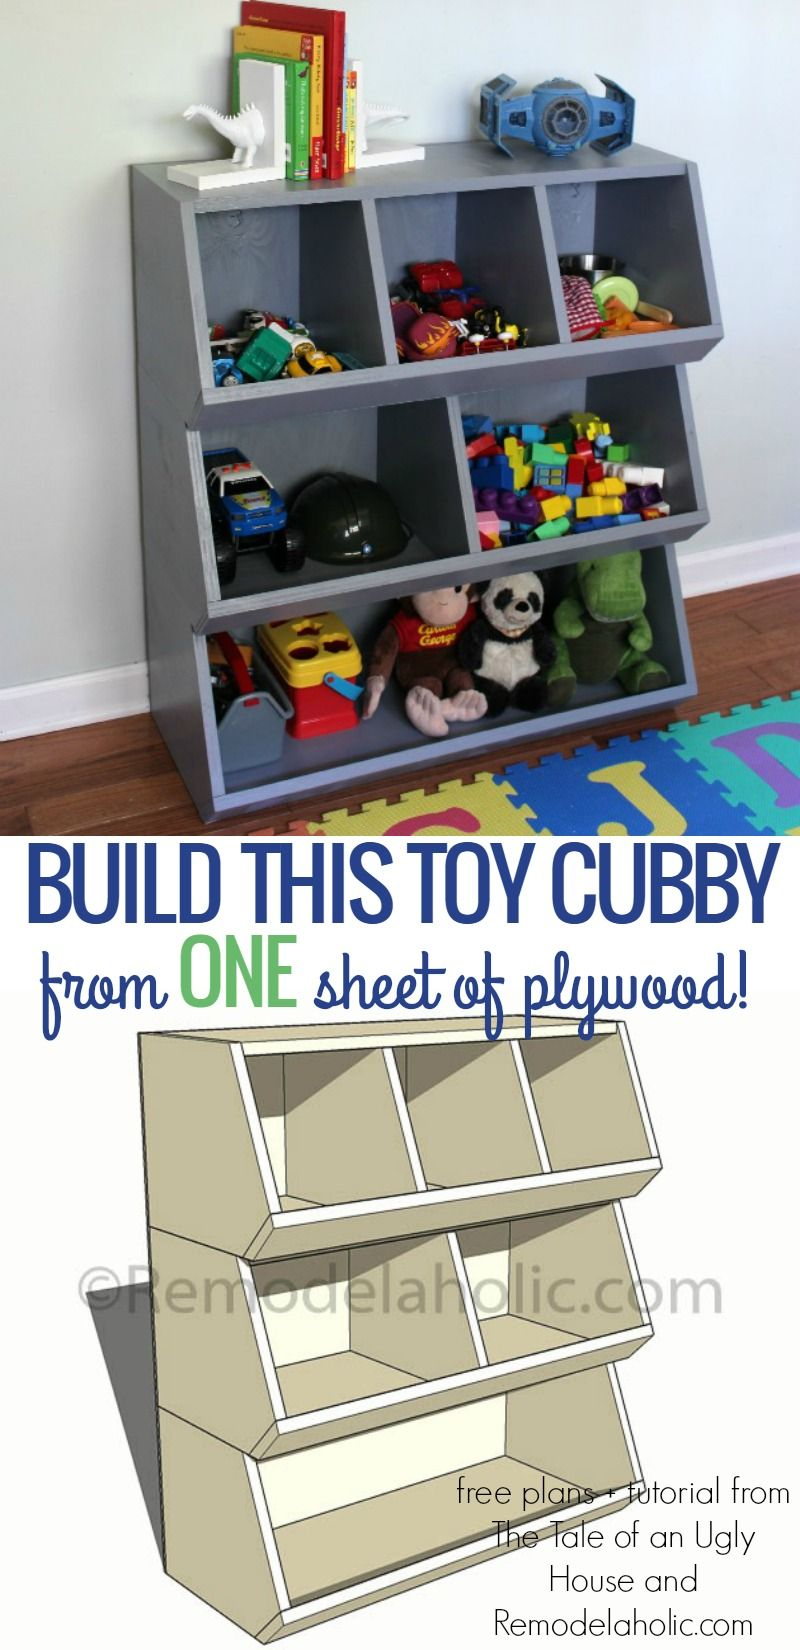 Bookshelf Storage Chest Kids Toy Box Plastic Play Room: Organize Kids' Toys With This Easy To Build Toy Cubby